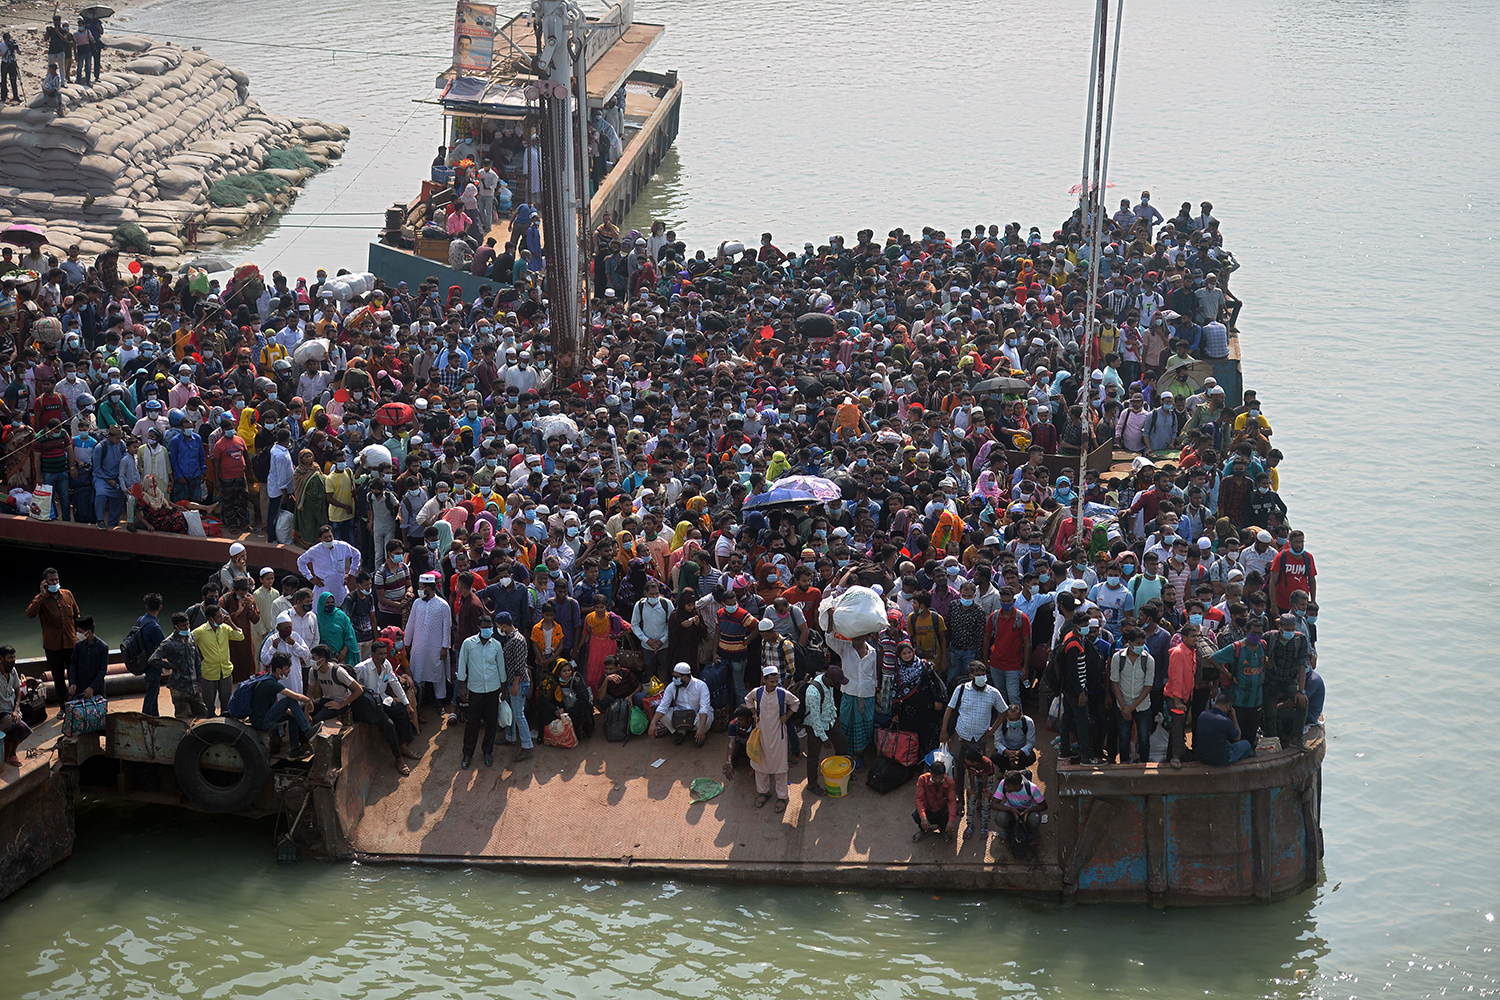 People crowd together as they wait to board a ferry in Bangladesh